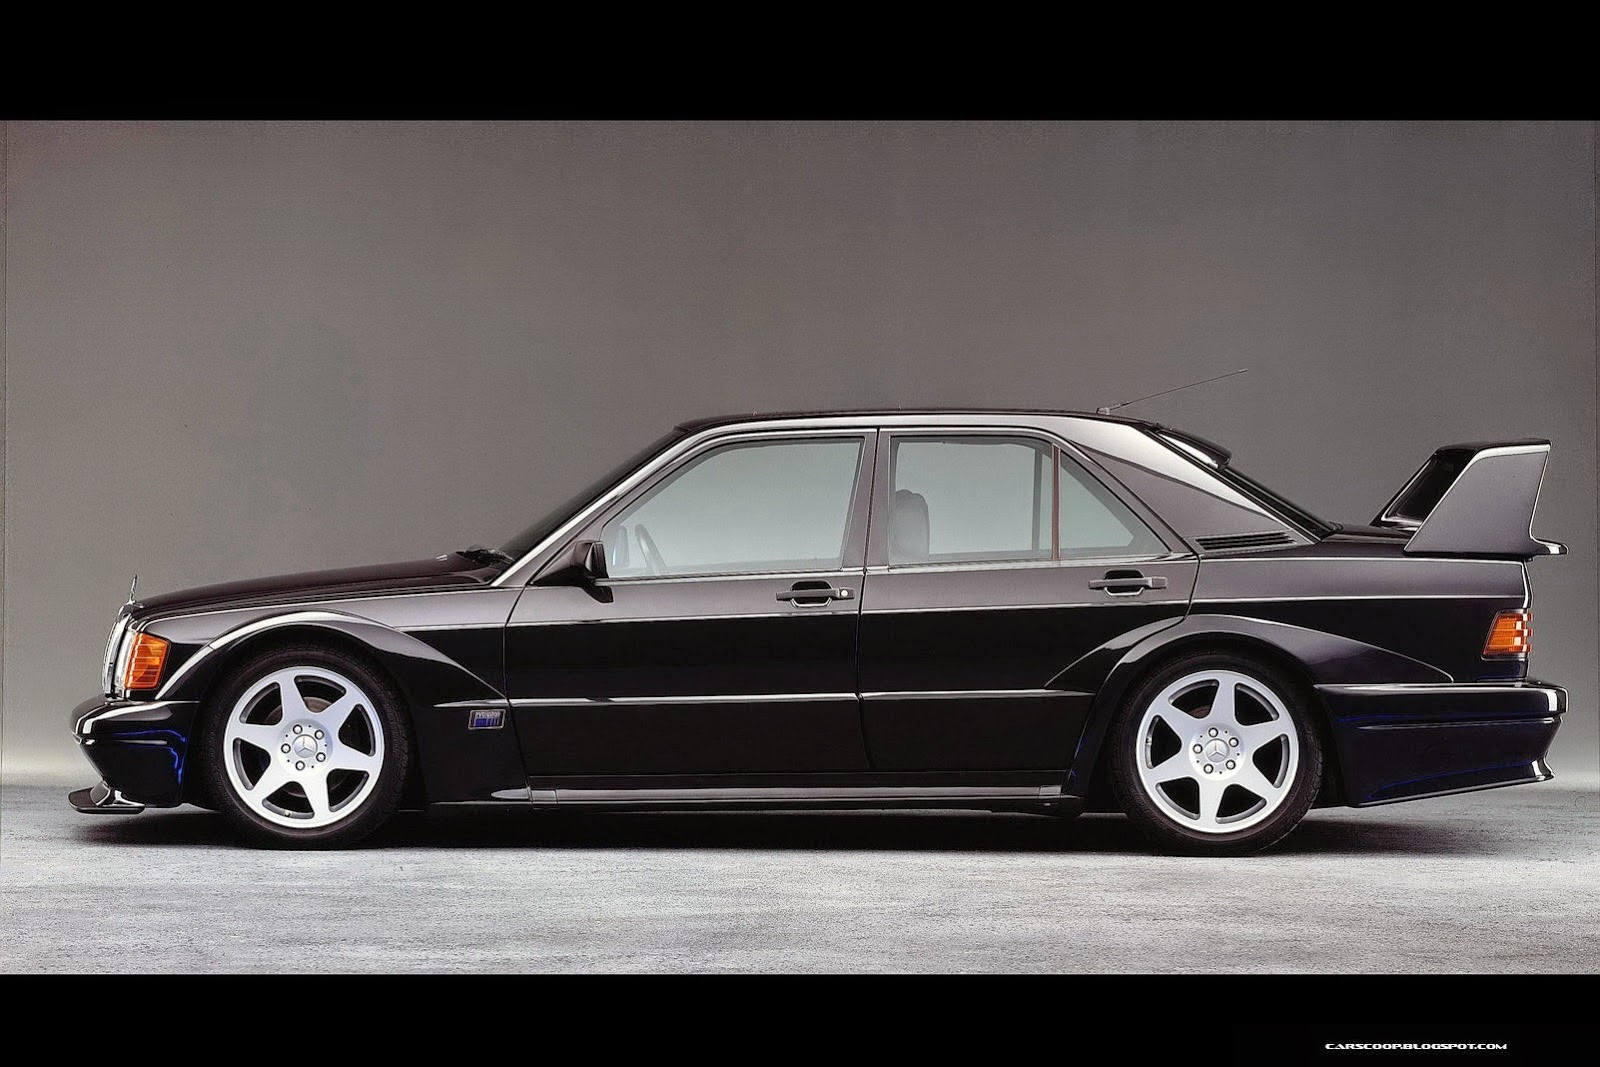 Theclassiccarfactory com mercedes benz w201 190e 2 3 2 6 cosworth sportline limited edition review